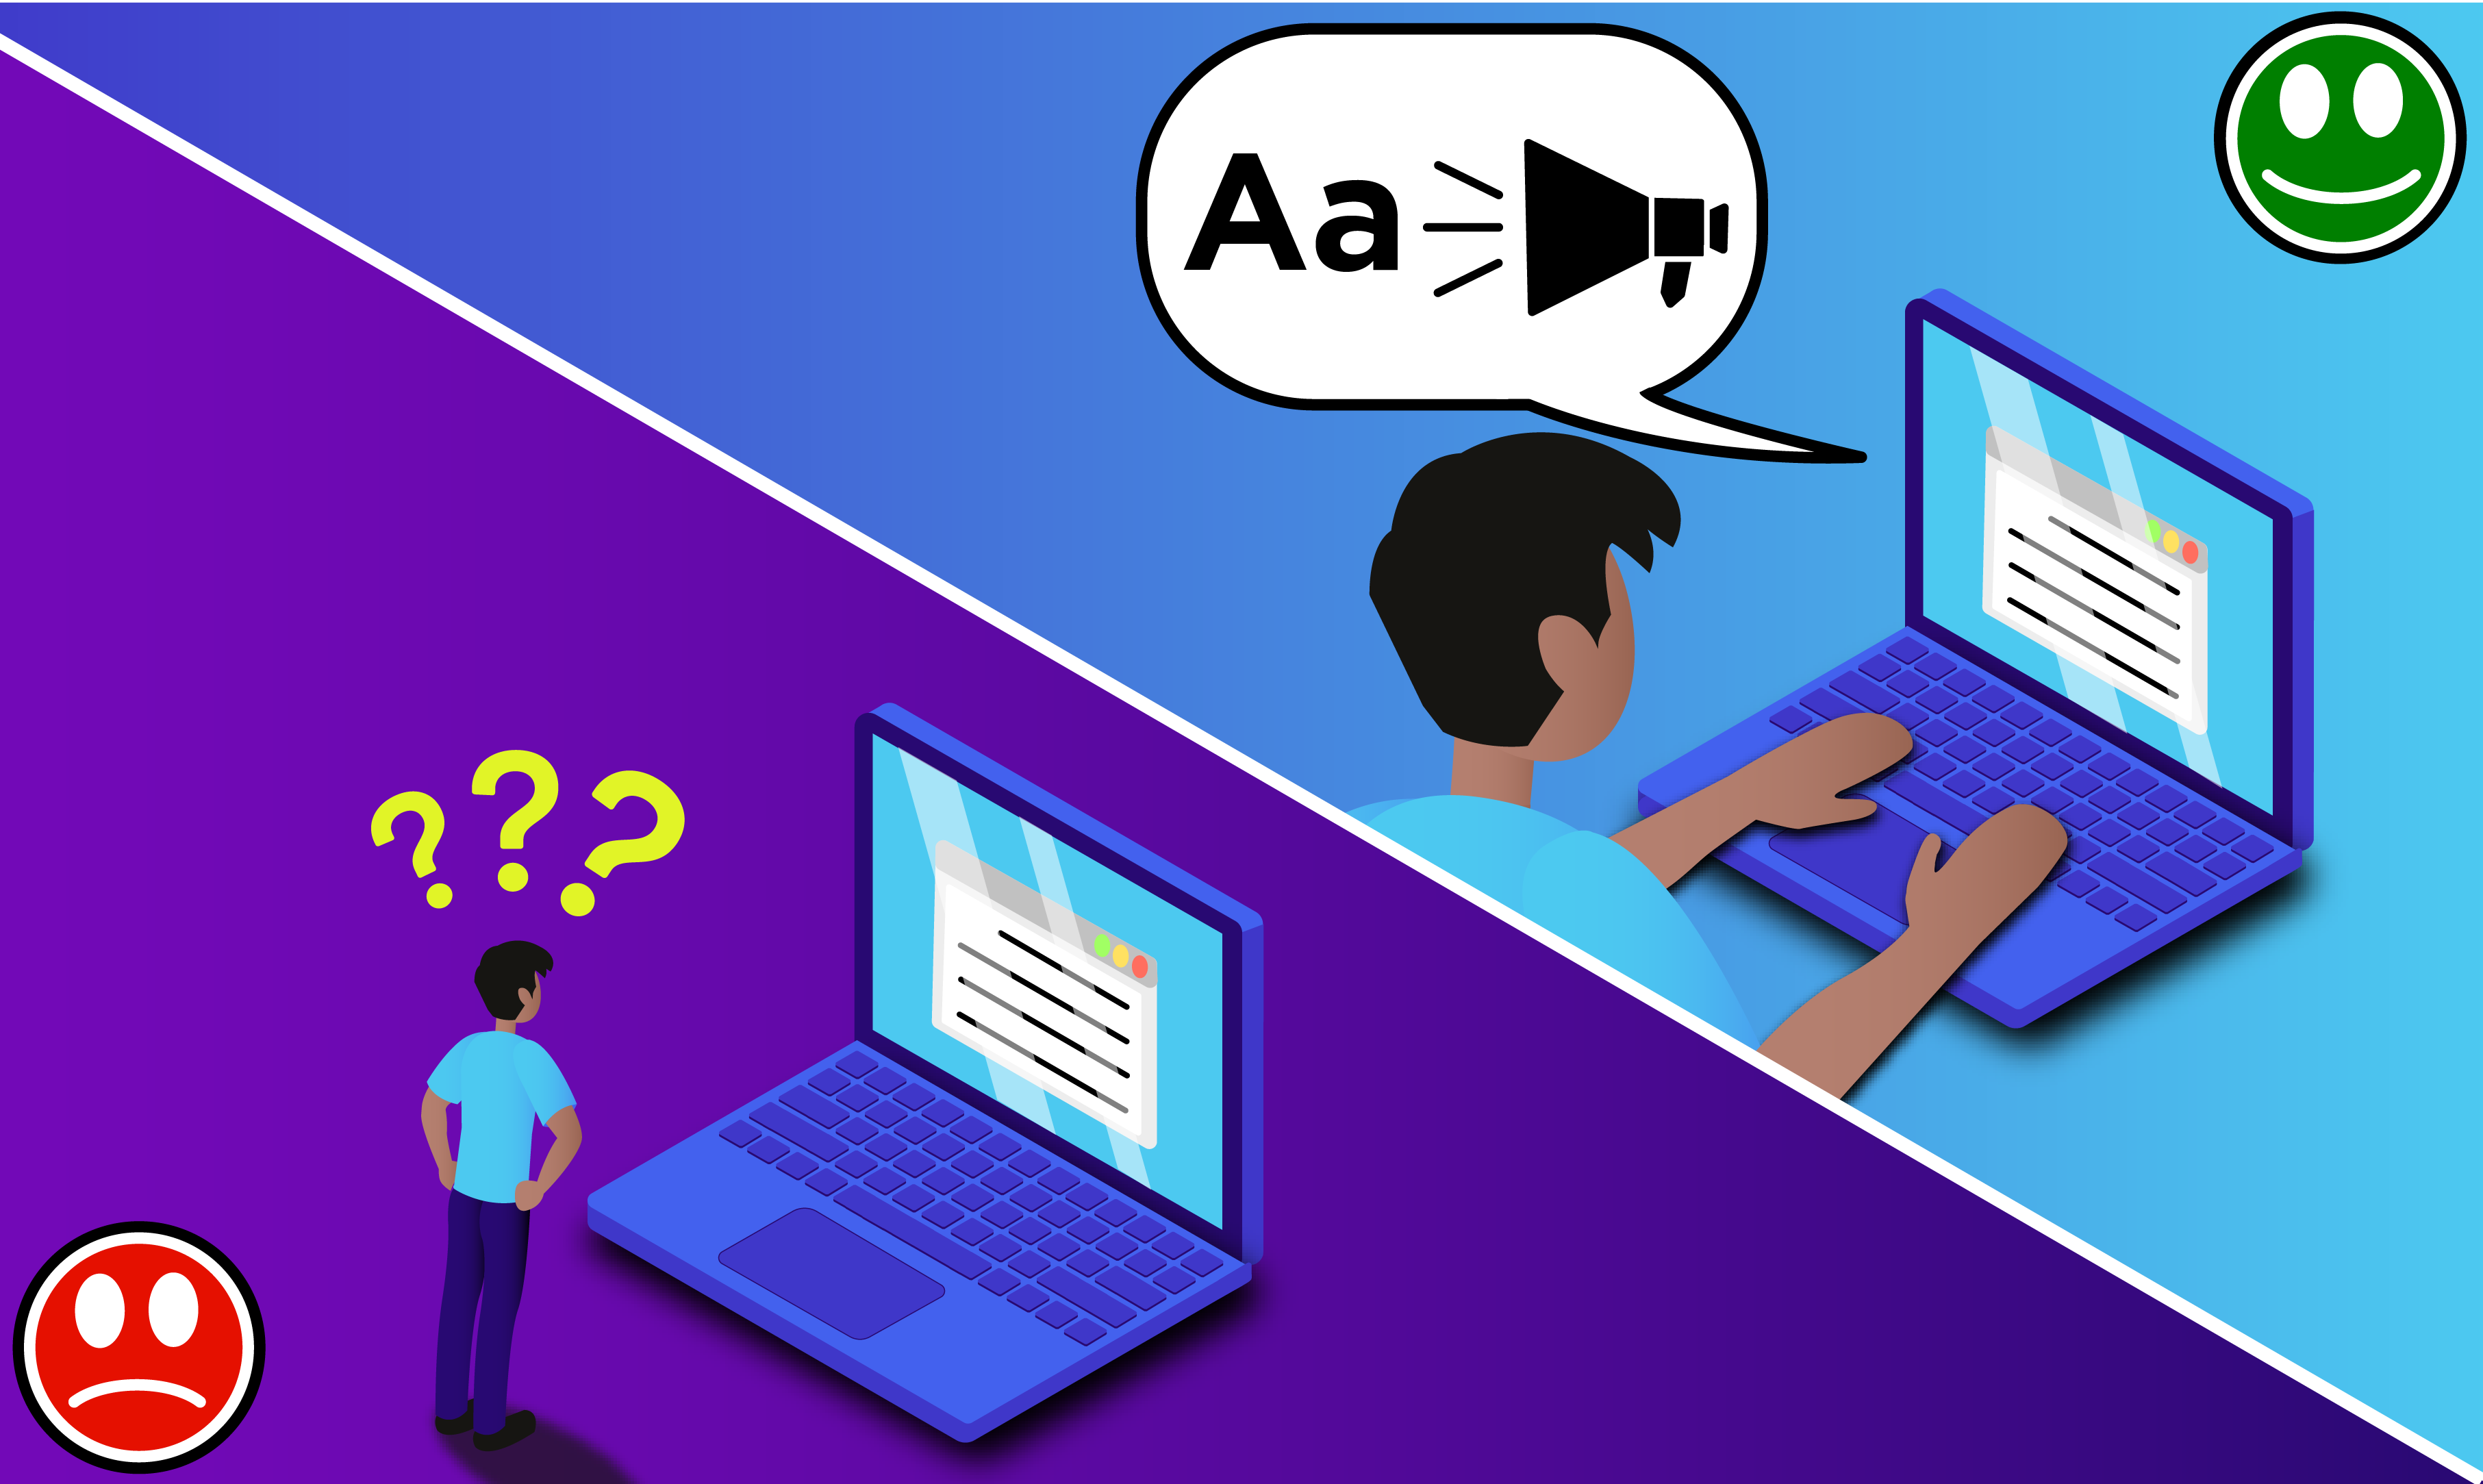 Split screen illustration depicting a confusing screen reader experience on the left and a clear, communicative one on the right.